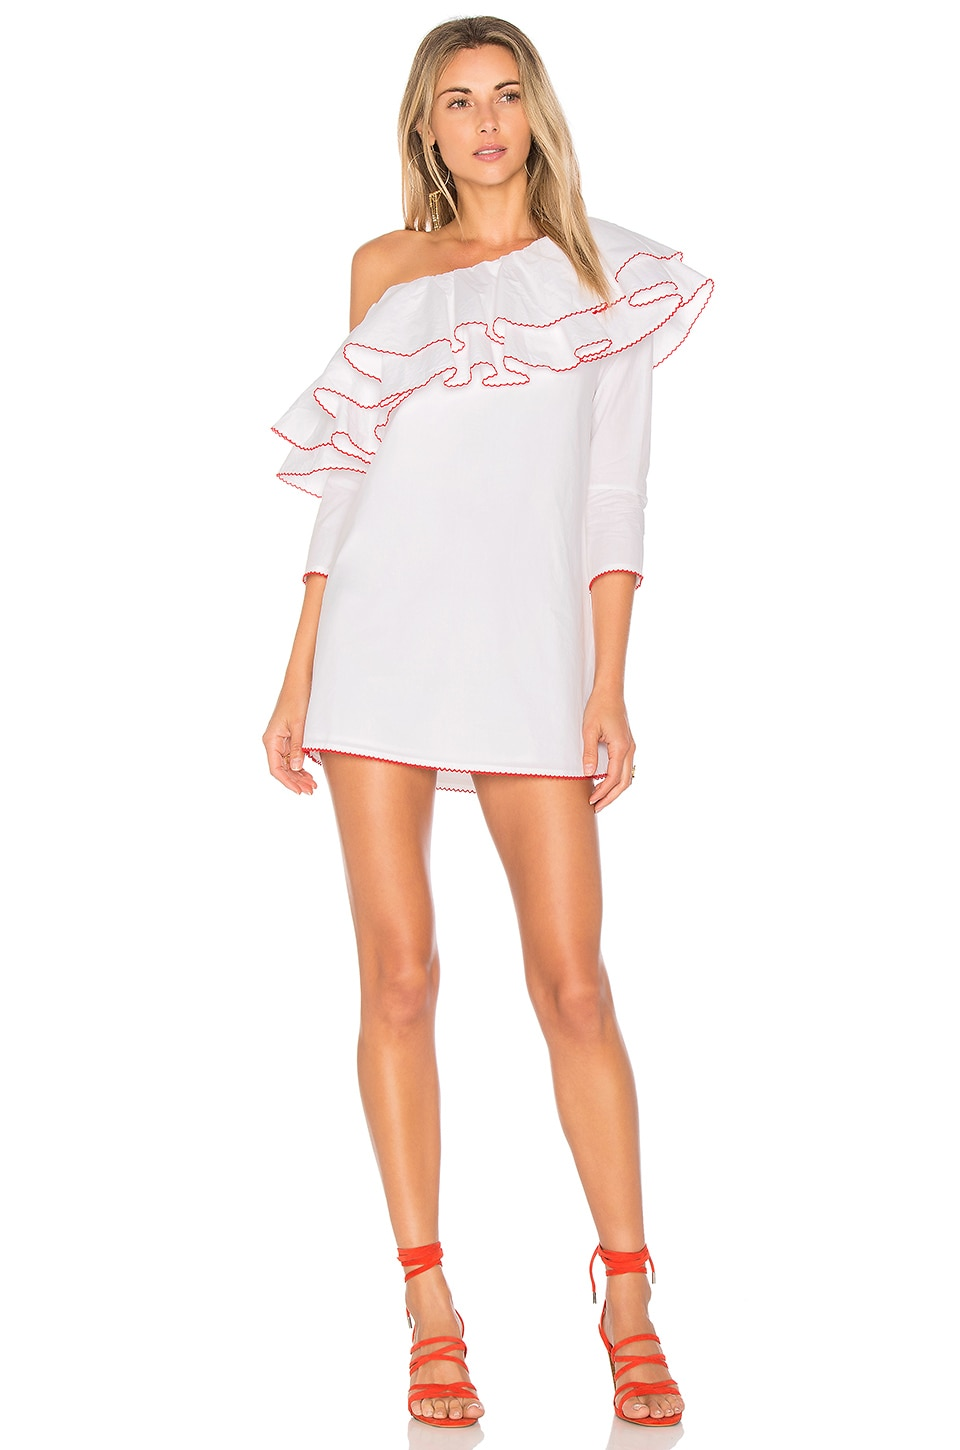 Lovers + Friends x REVOLVE Ruffle Dress in White